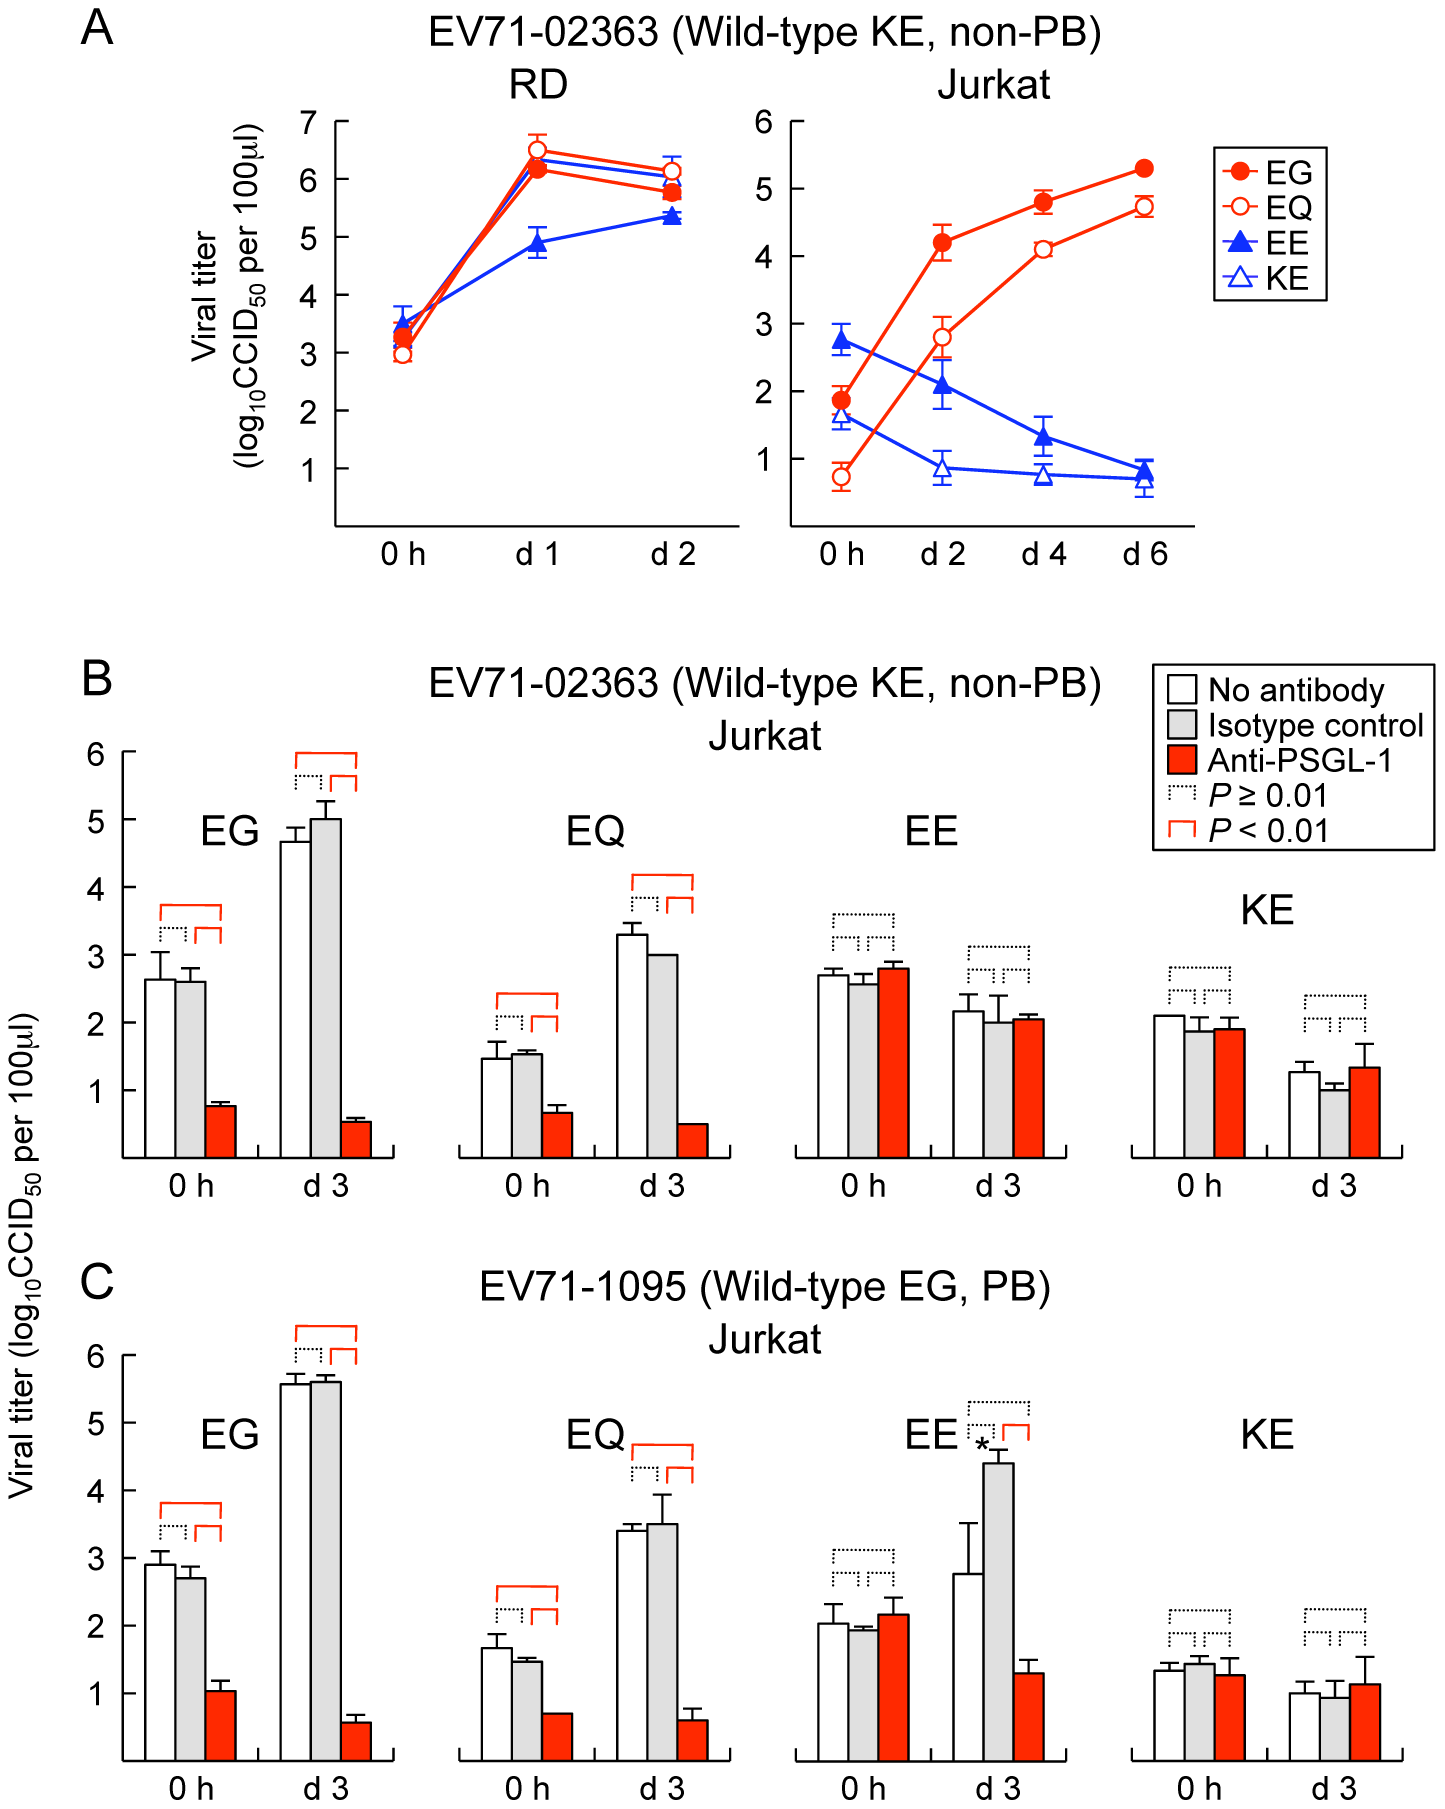 Replication of EV71 mutants in RD and Jurkat cells.